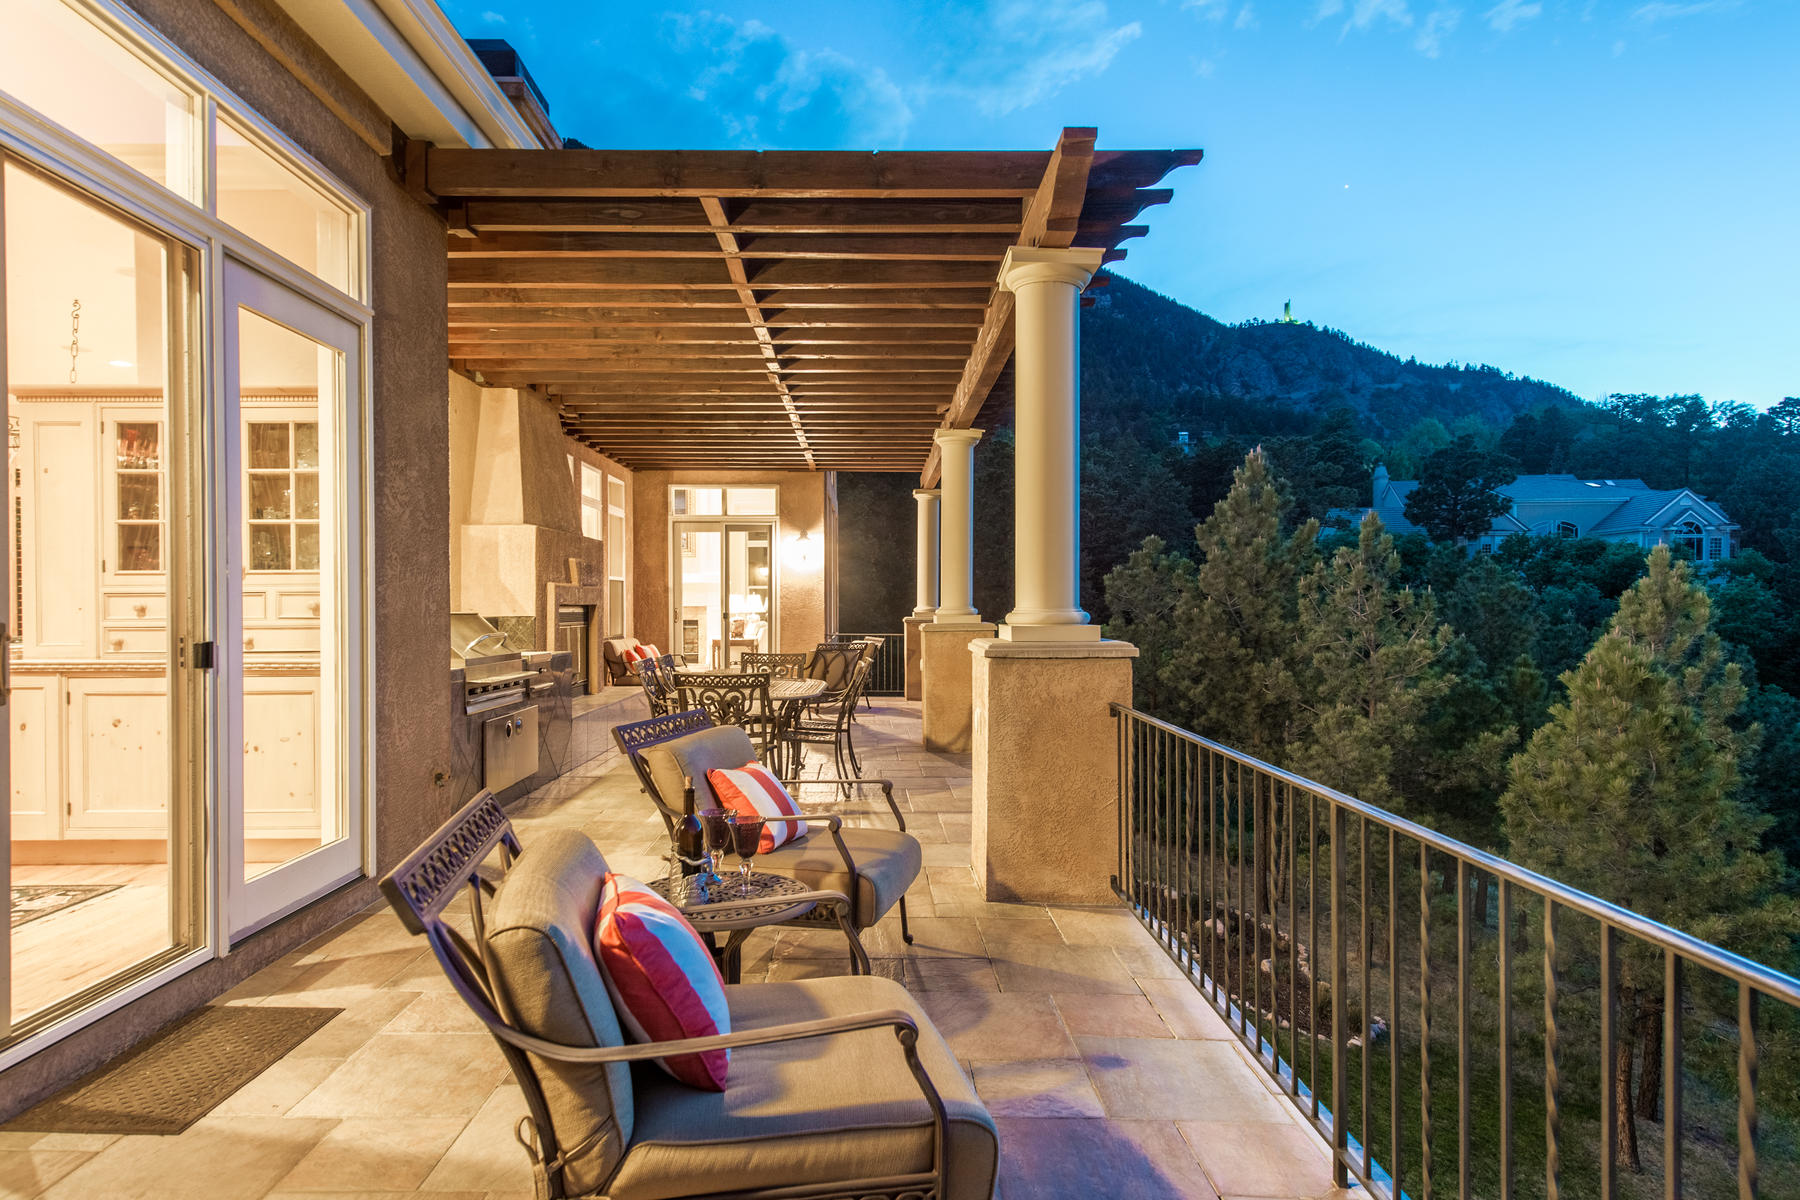 Additional photo for property listing at Beautifully secluded Tuscan style home in Broadmoor Resort Community 4355 Stone Manor Hts Colorado Springs, Colorado 80906 United States